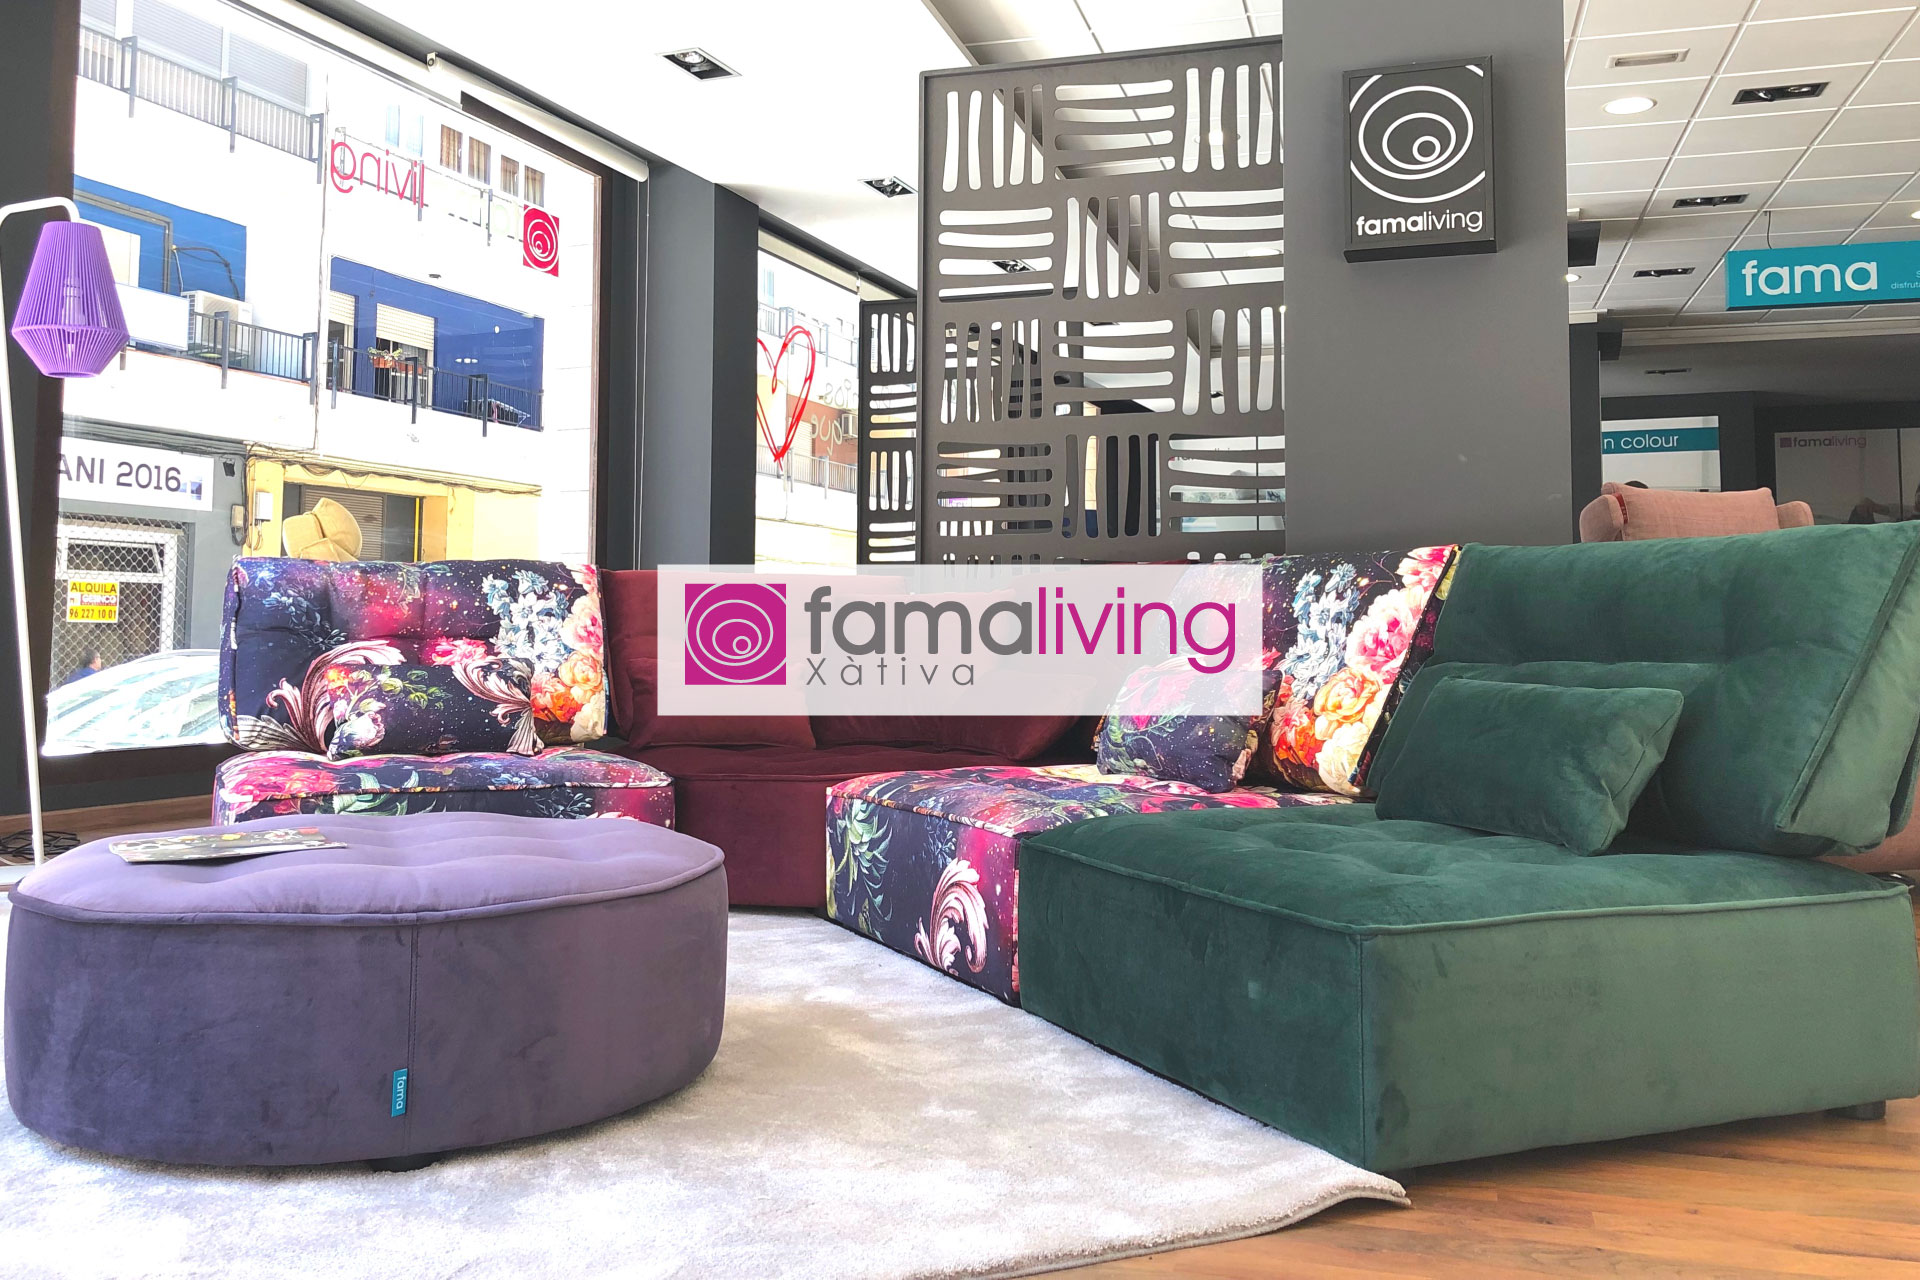 Famaliving X&agrave;tiva - Sofa Store<br /><br />